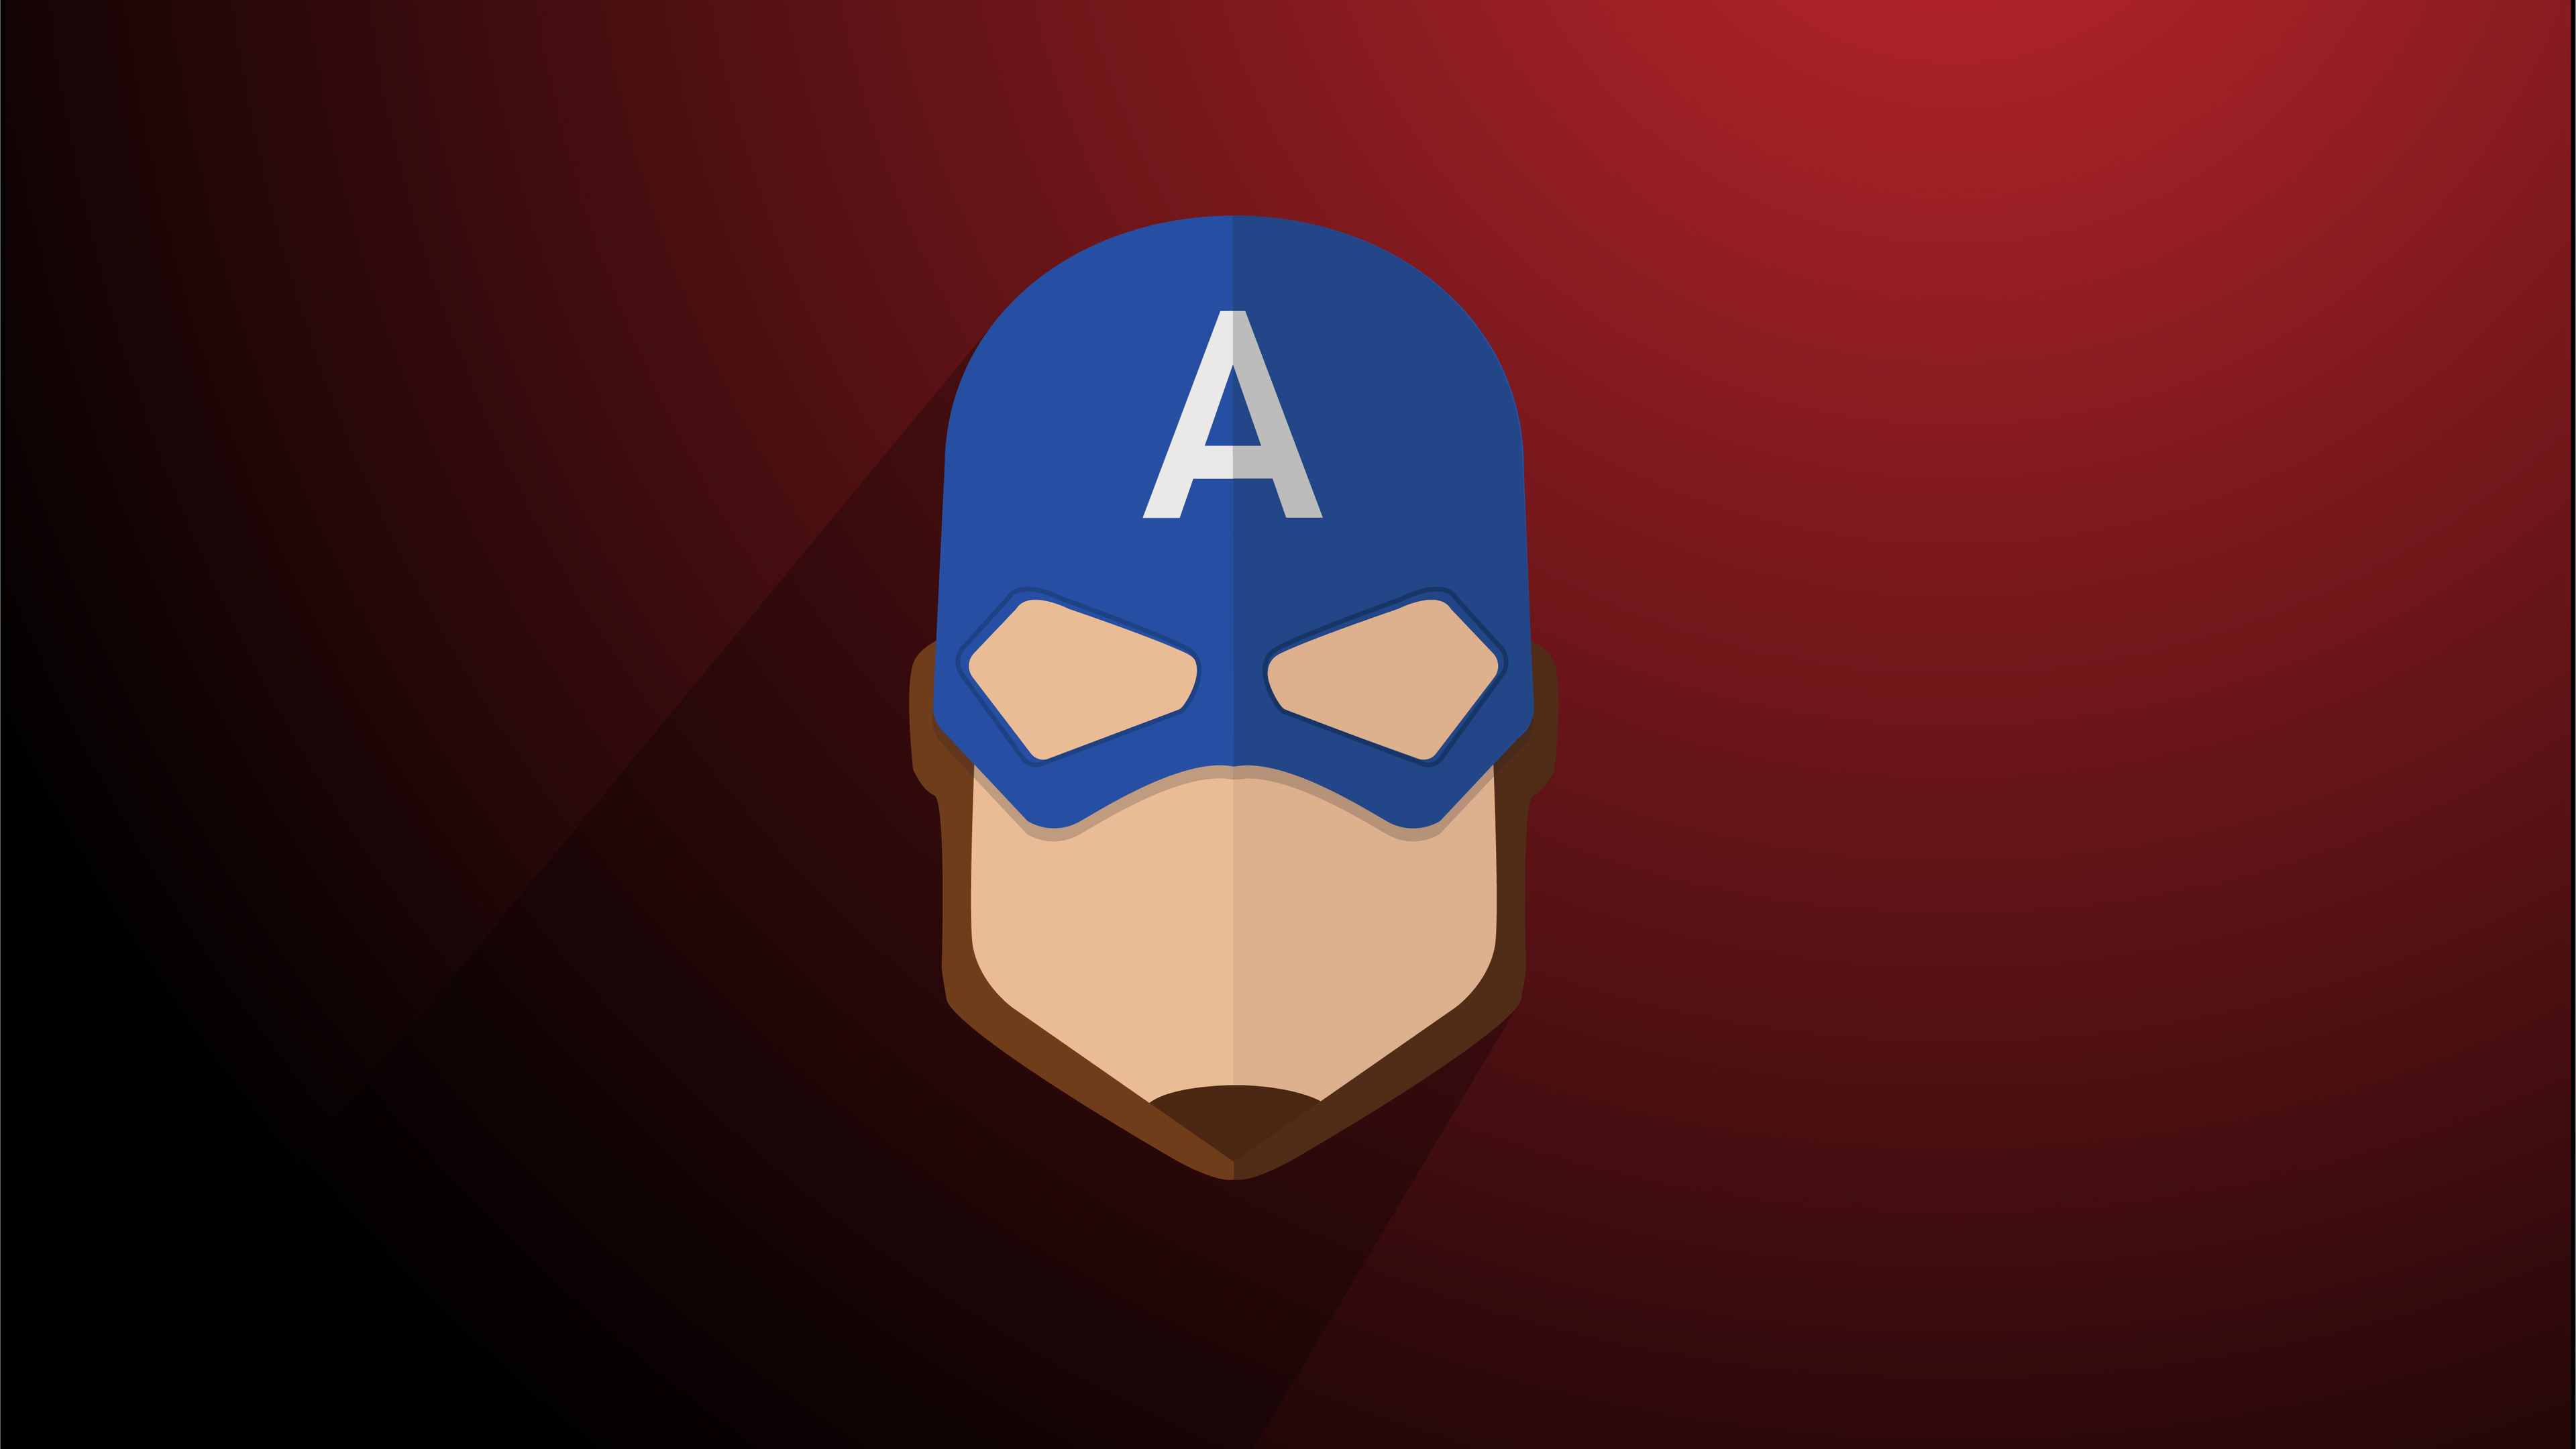 captain america minimalist 4k 1545588728 - Captain America Minimalist 4k - superheroes wallpapers, minimalist wallpapers, minimalism wallpapers, hd-wallpapers, captain america wallpapers, 4k-wallpapers